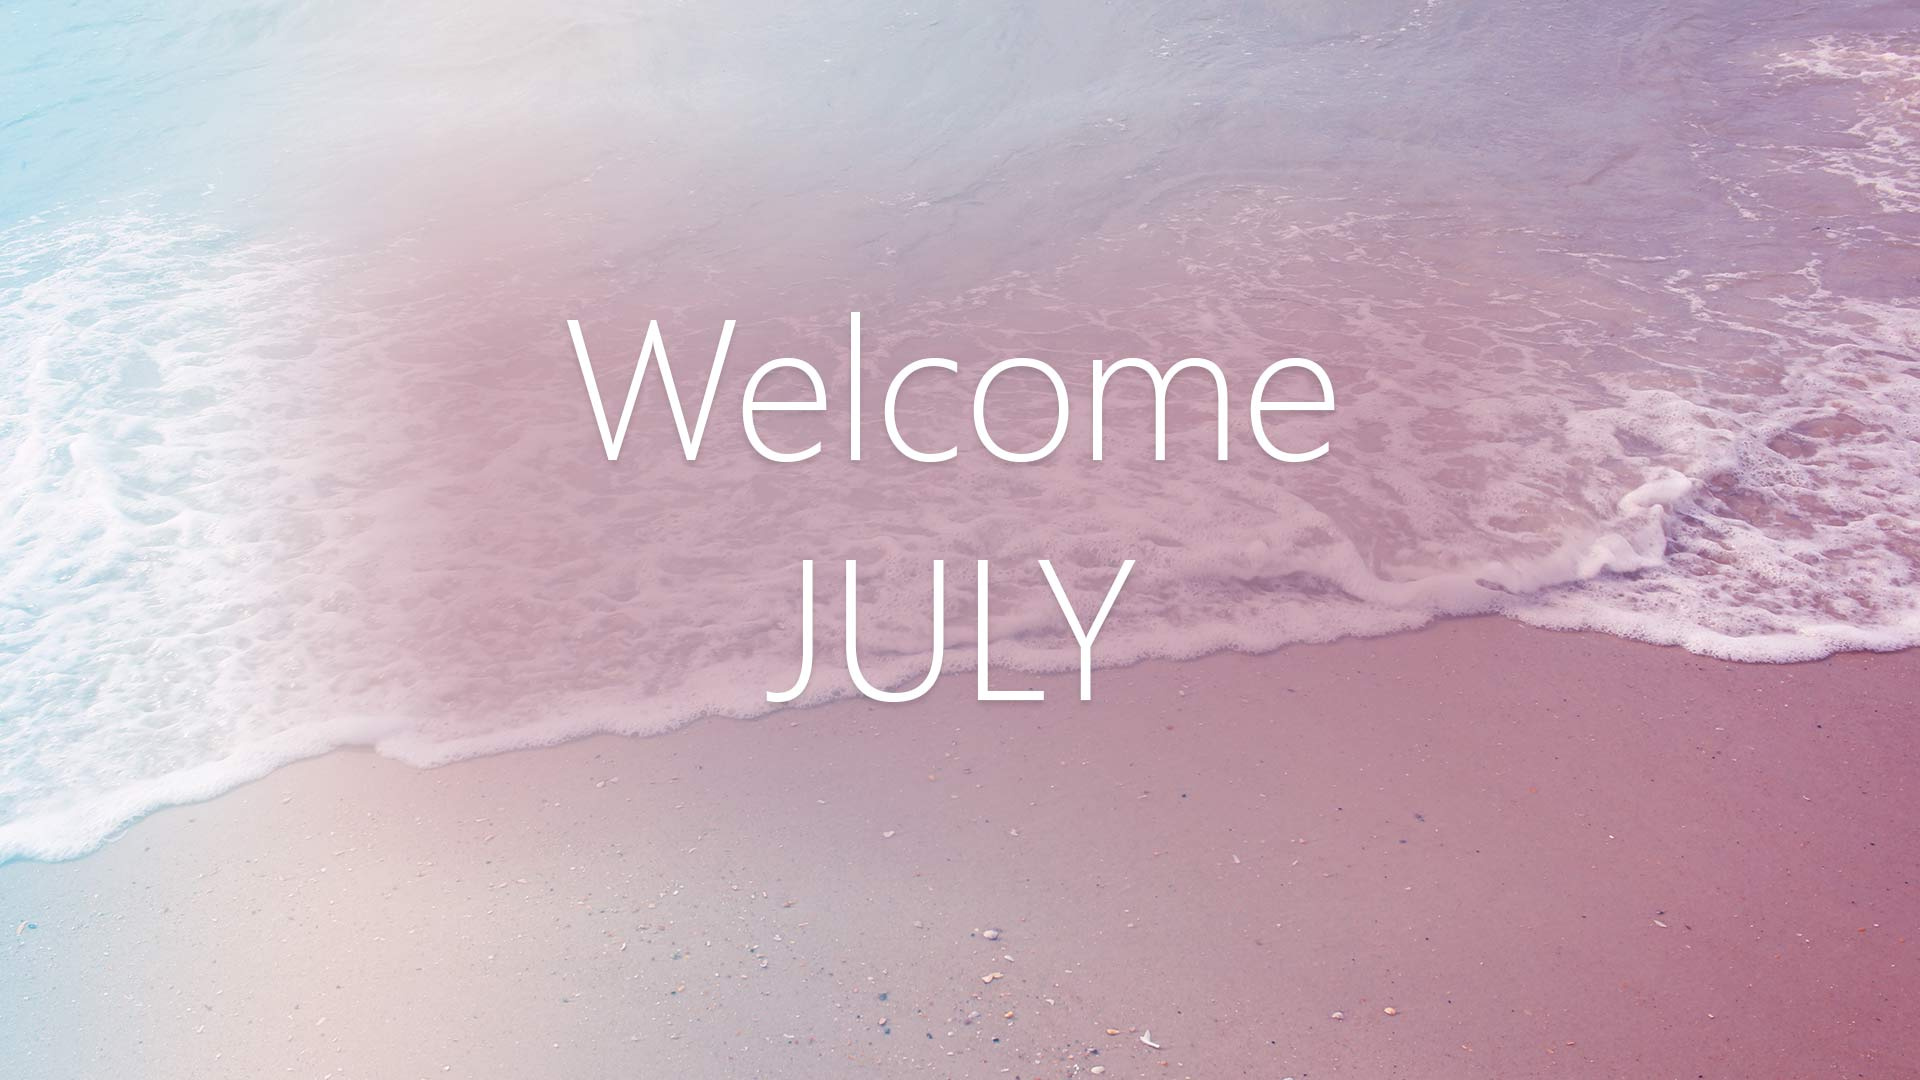 Welcome July Summer Images